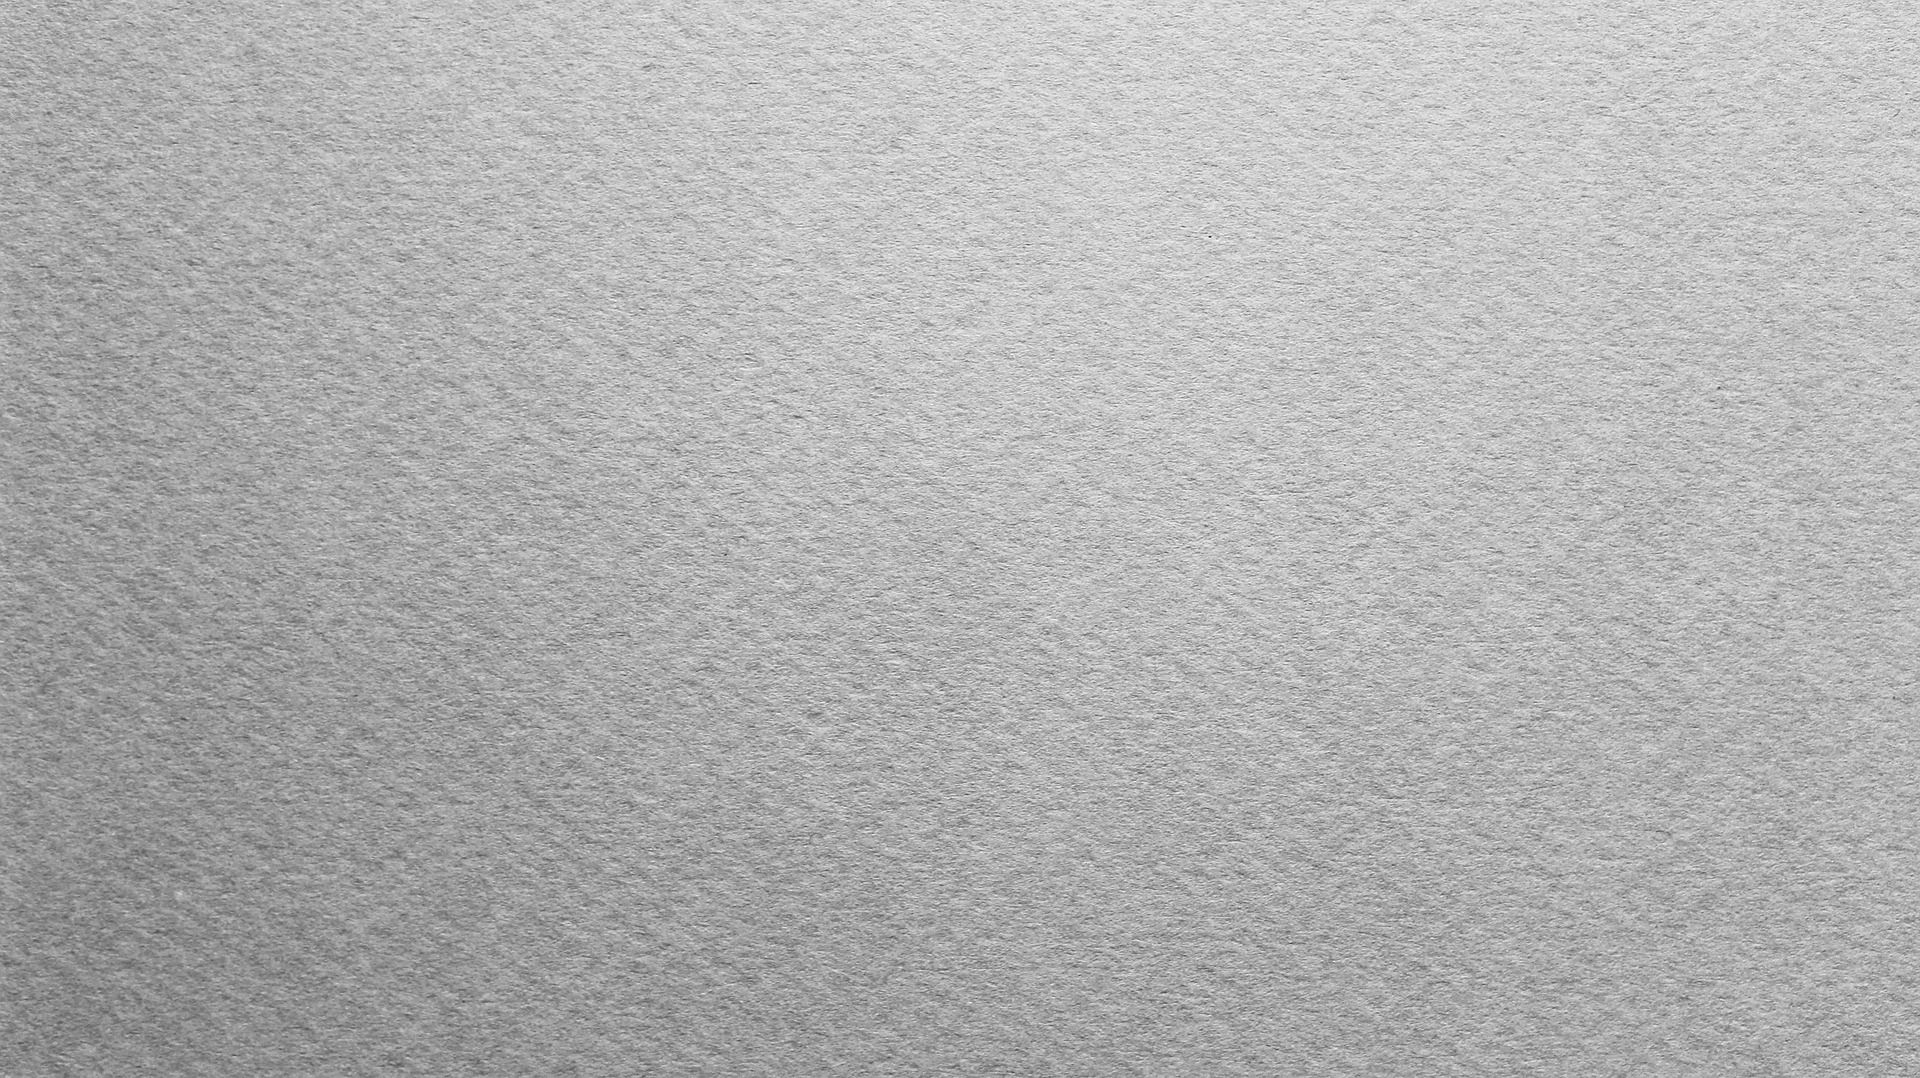 Free Image On Pixabay Paper Texture Invoiced Gray In 2020